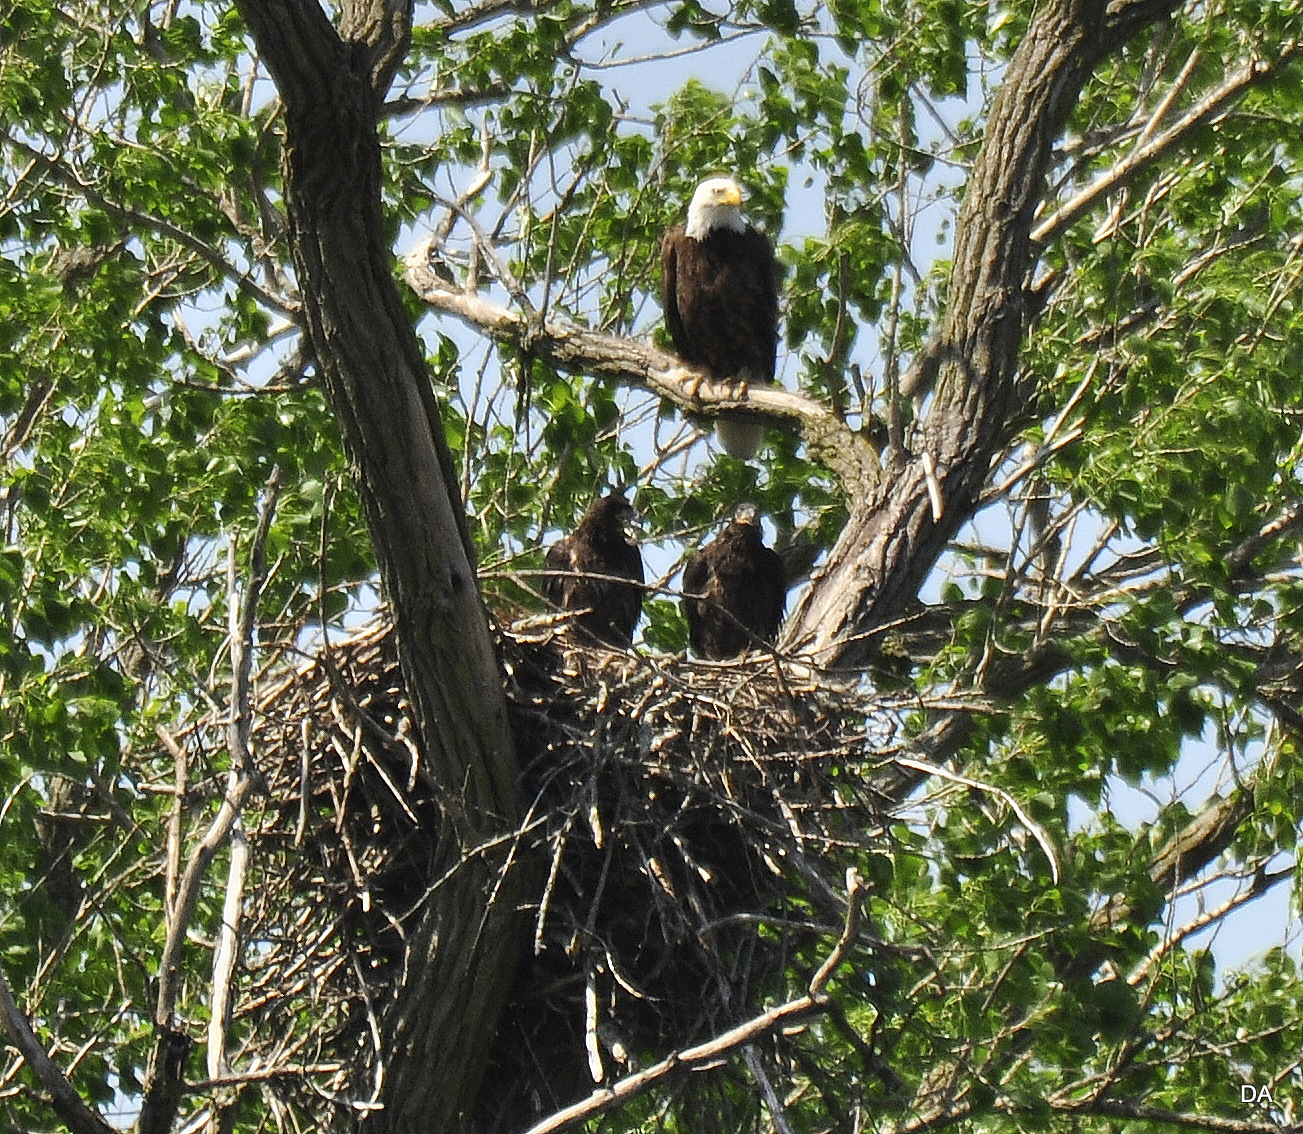 BALD EAGLE ADULT AND JUVENILES S. BELOIT IL -Patty Litten - South Beloit.JPG